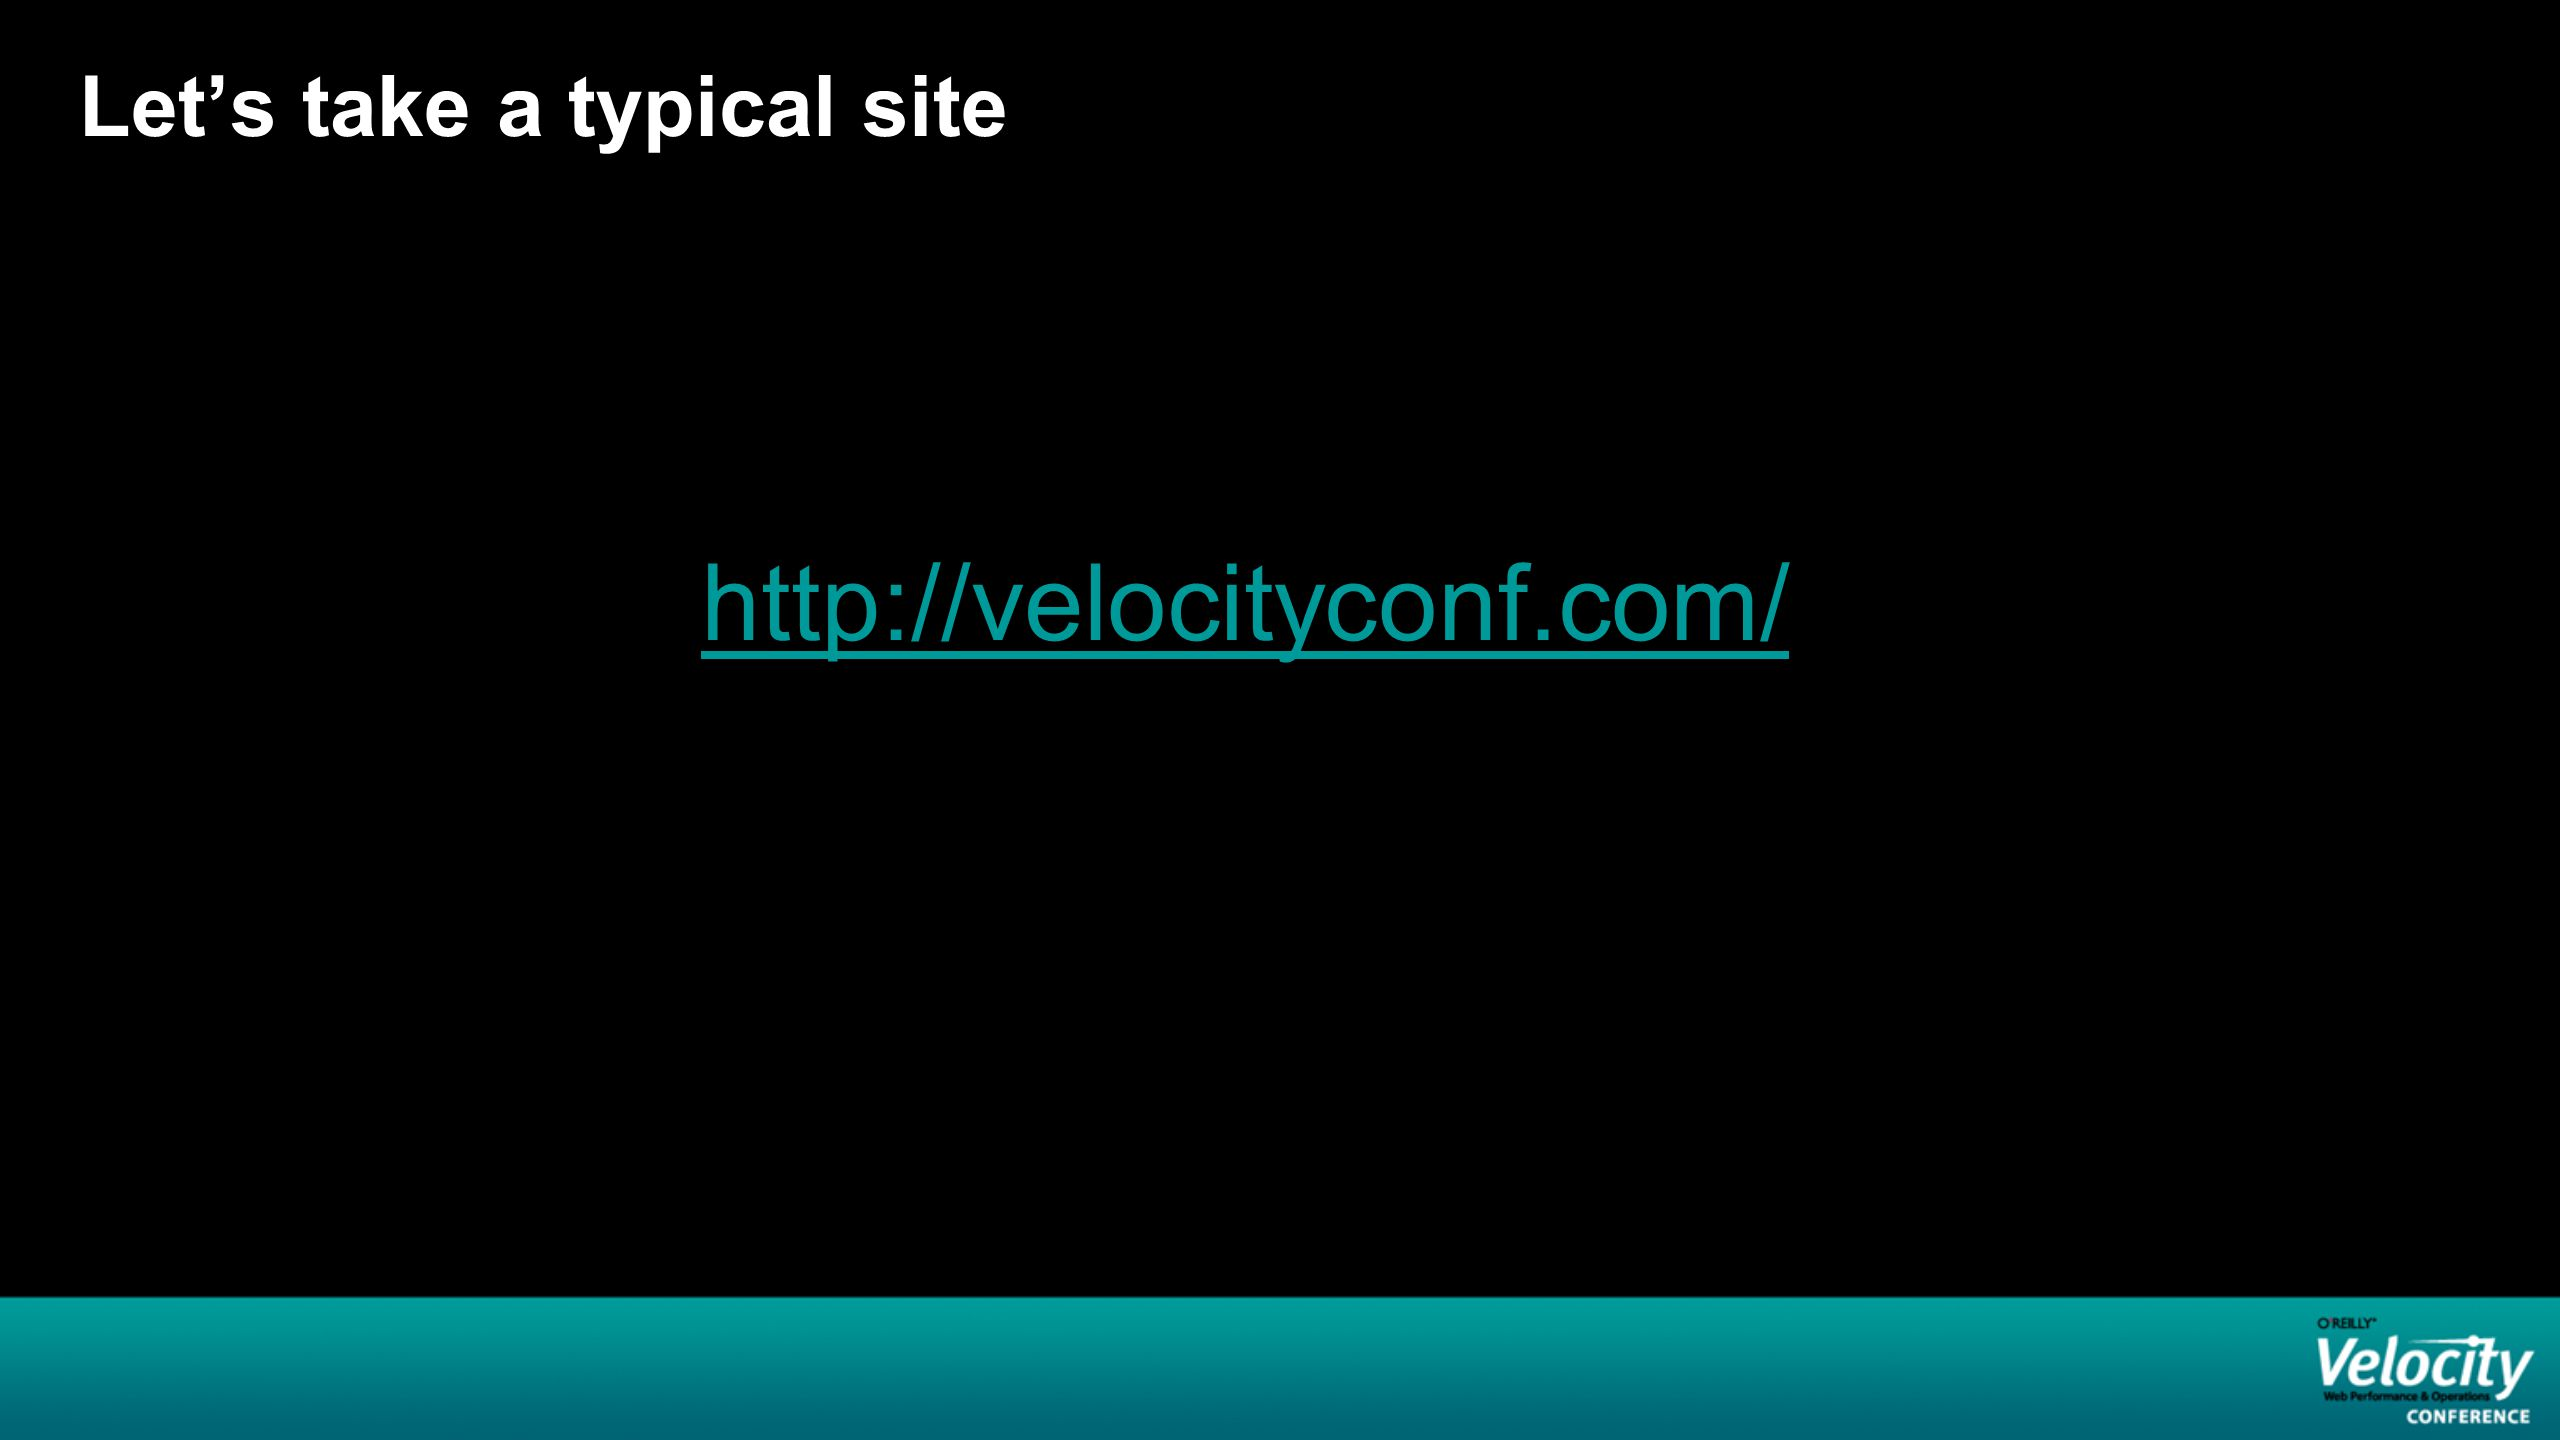 Let's take a typical site http://velocityconf.com/